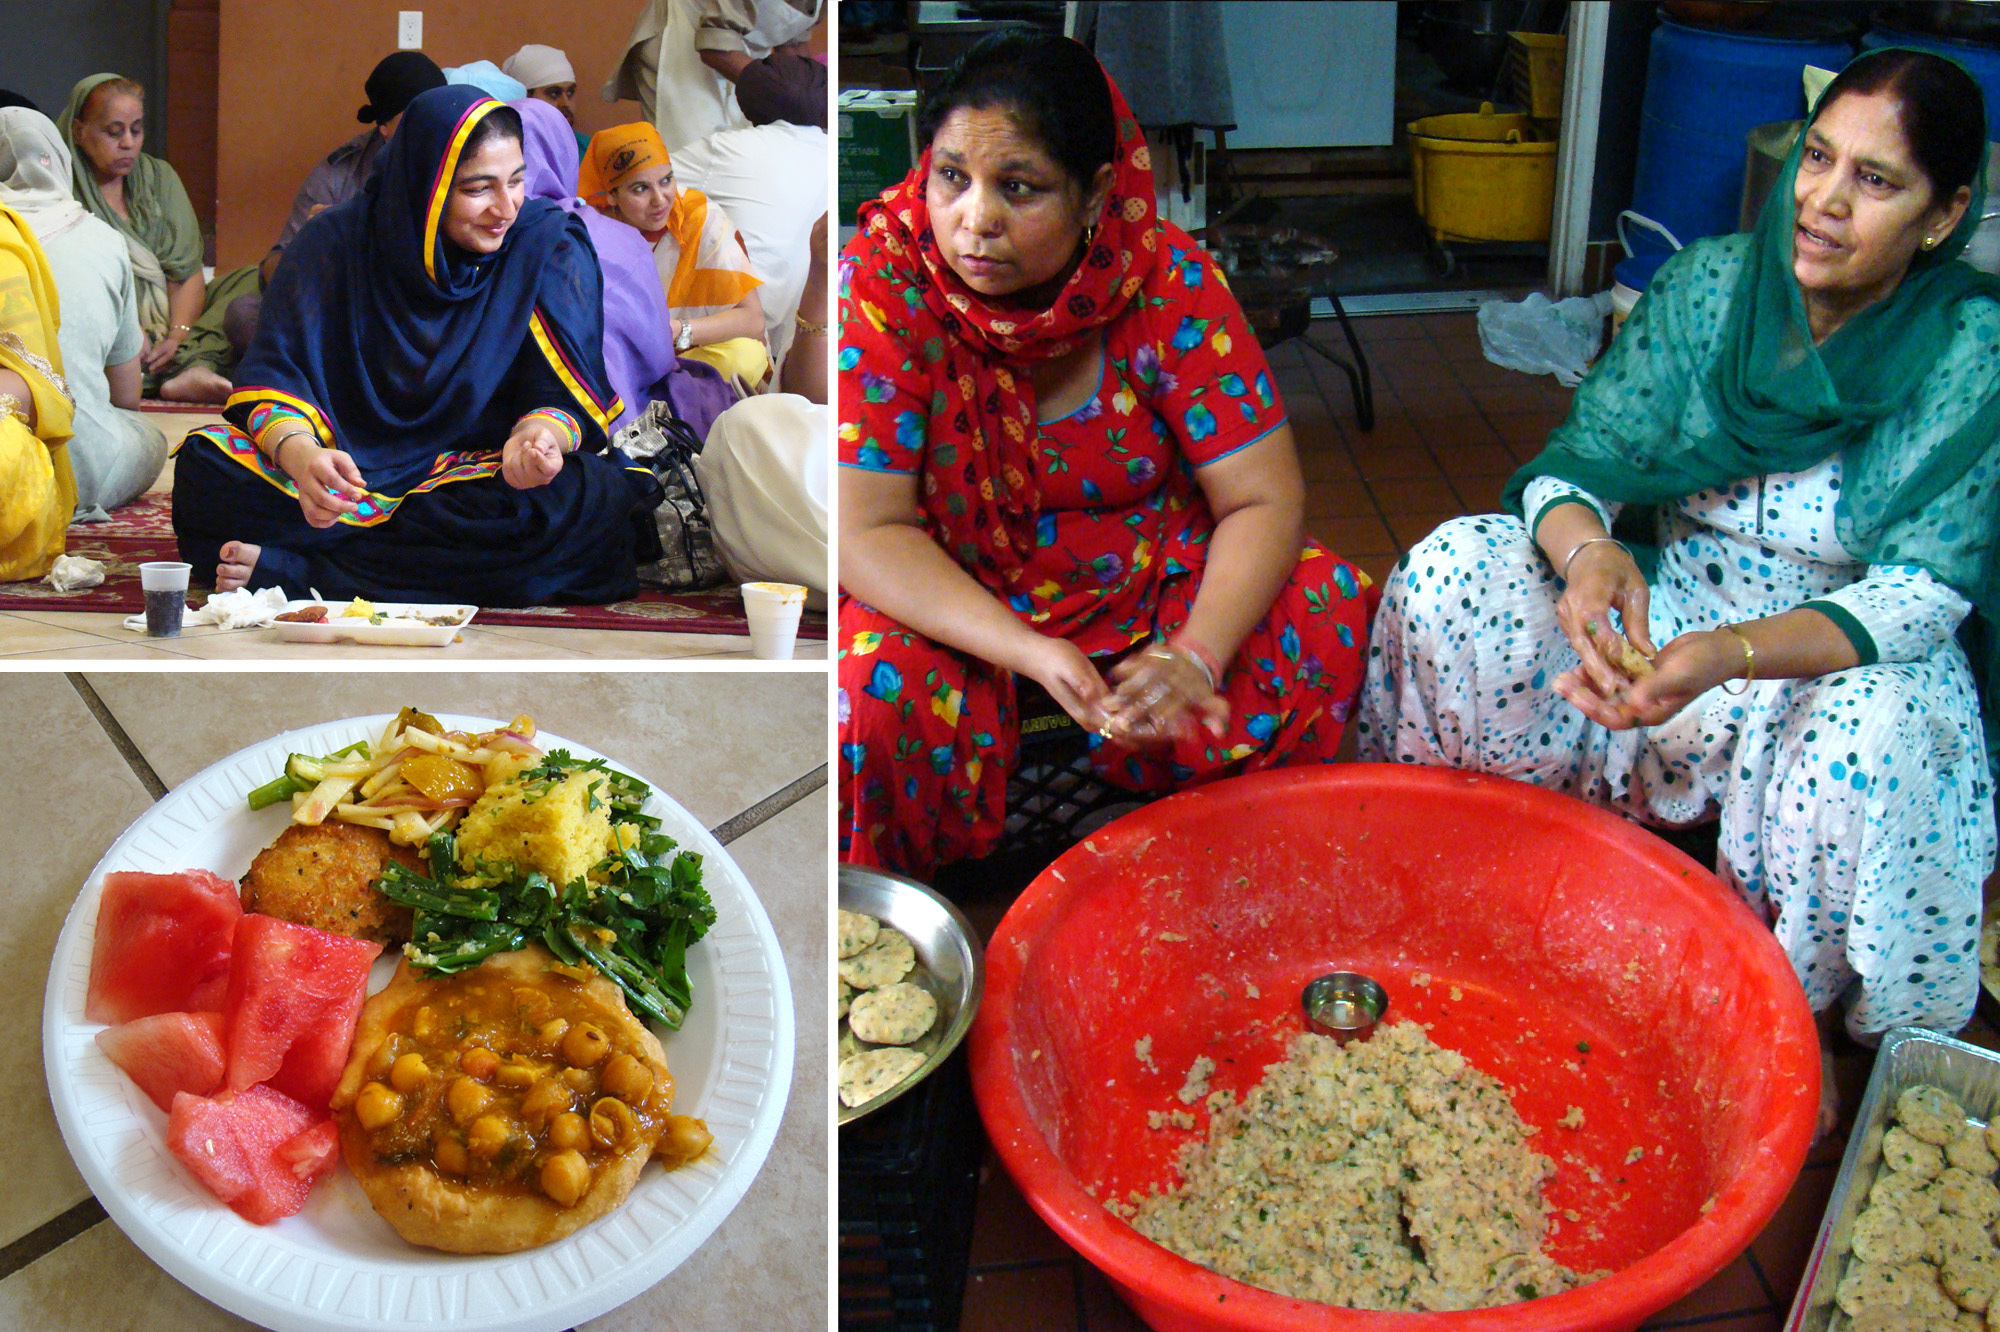 Women preparing and eating langar, a free meal served after the service at a Sikh Gurudwara in Jersey City on Sundays. This one includes chickpeas in gravy, aloo tikki (potato patties), salad, lentils and fruit. Traditionally, everyone eats side-by-side on the floor to symbolize equality.